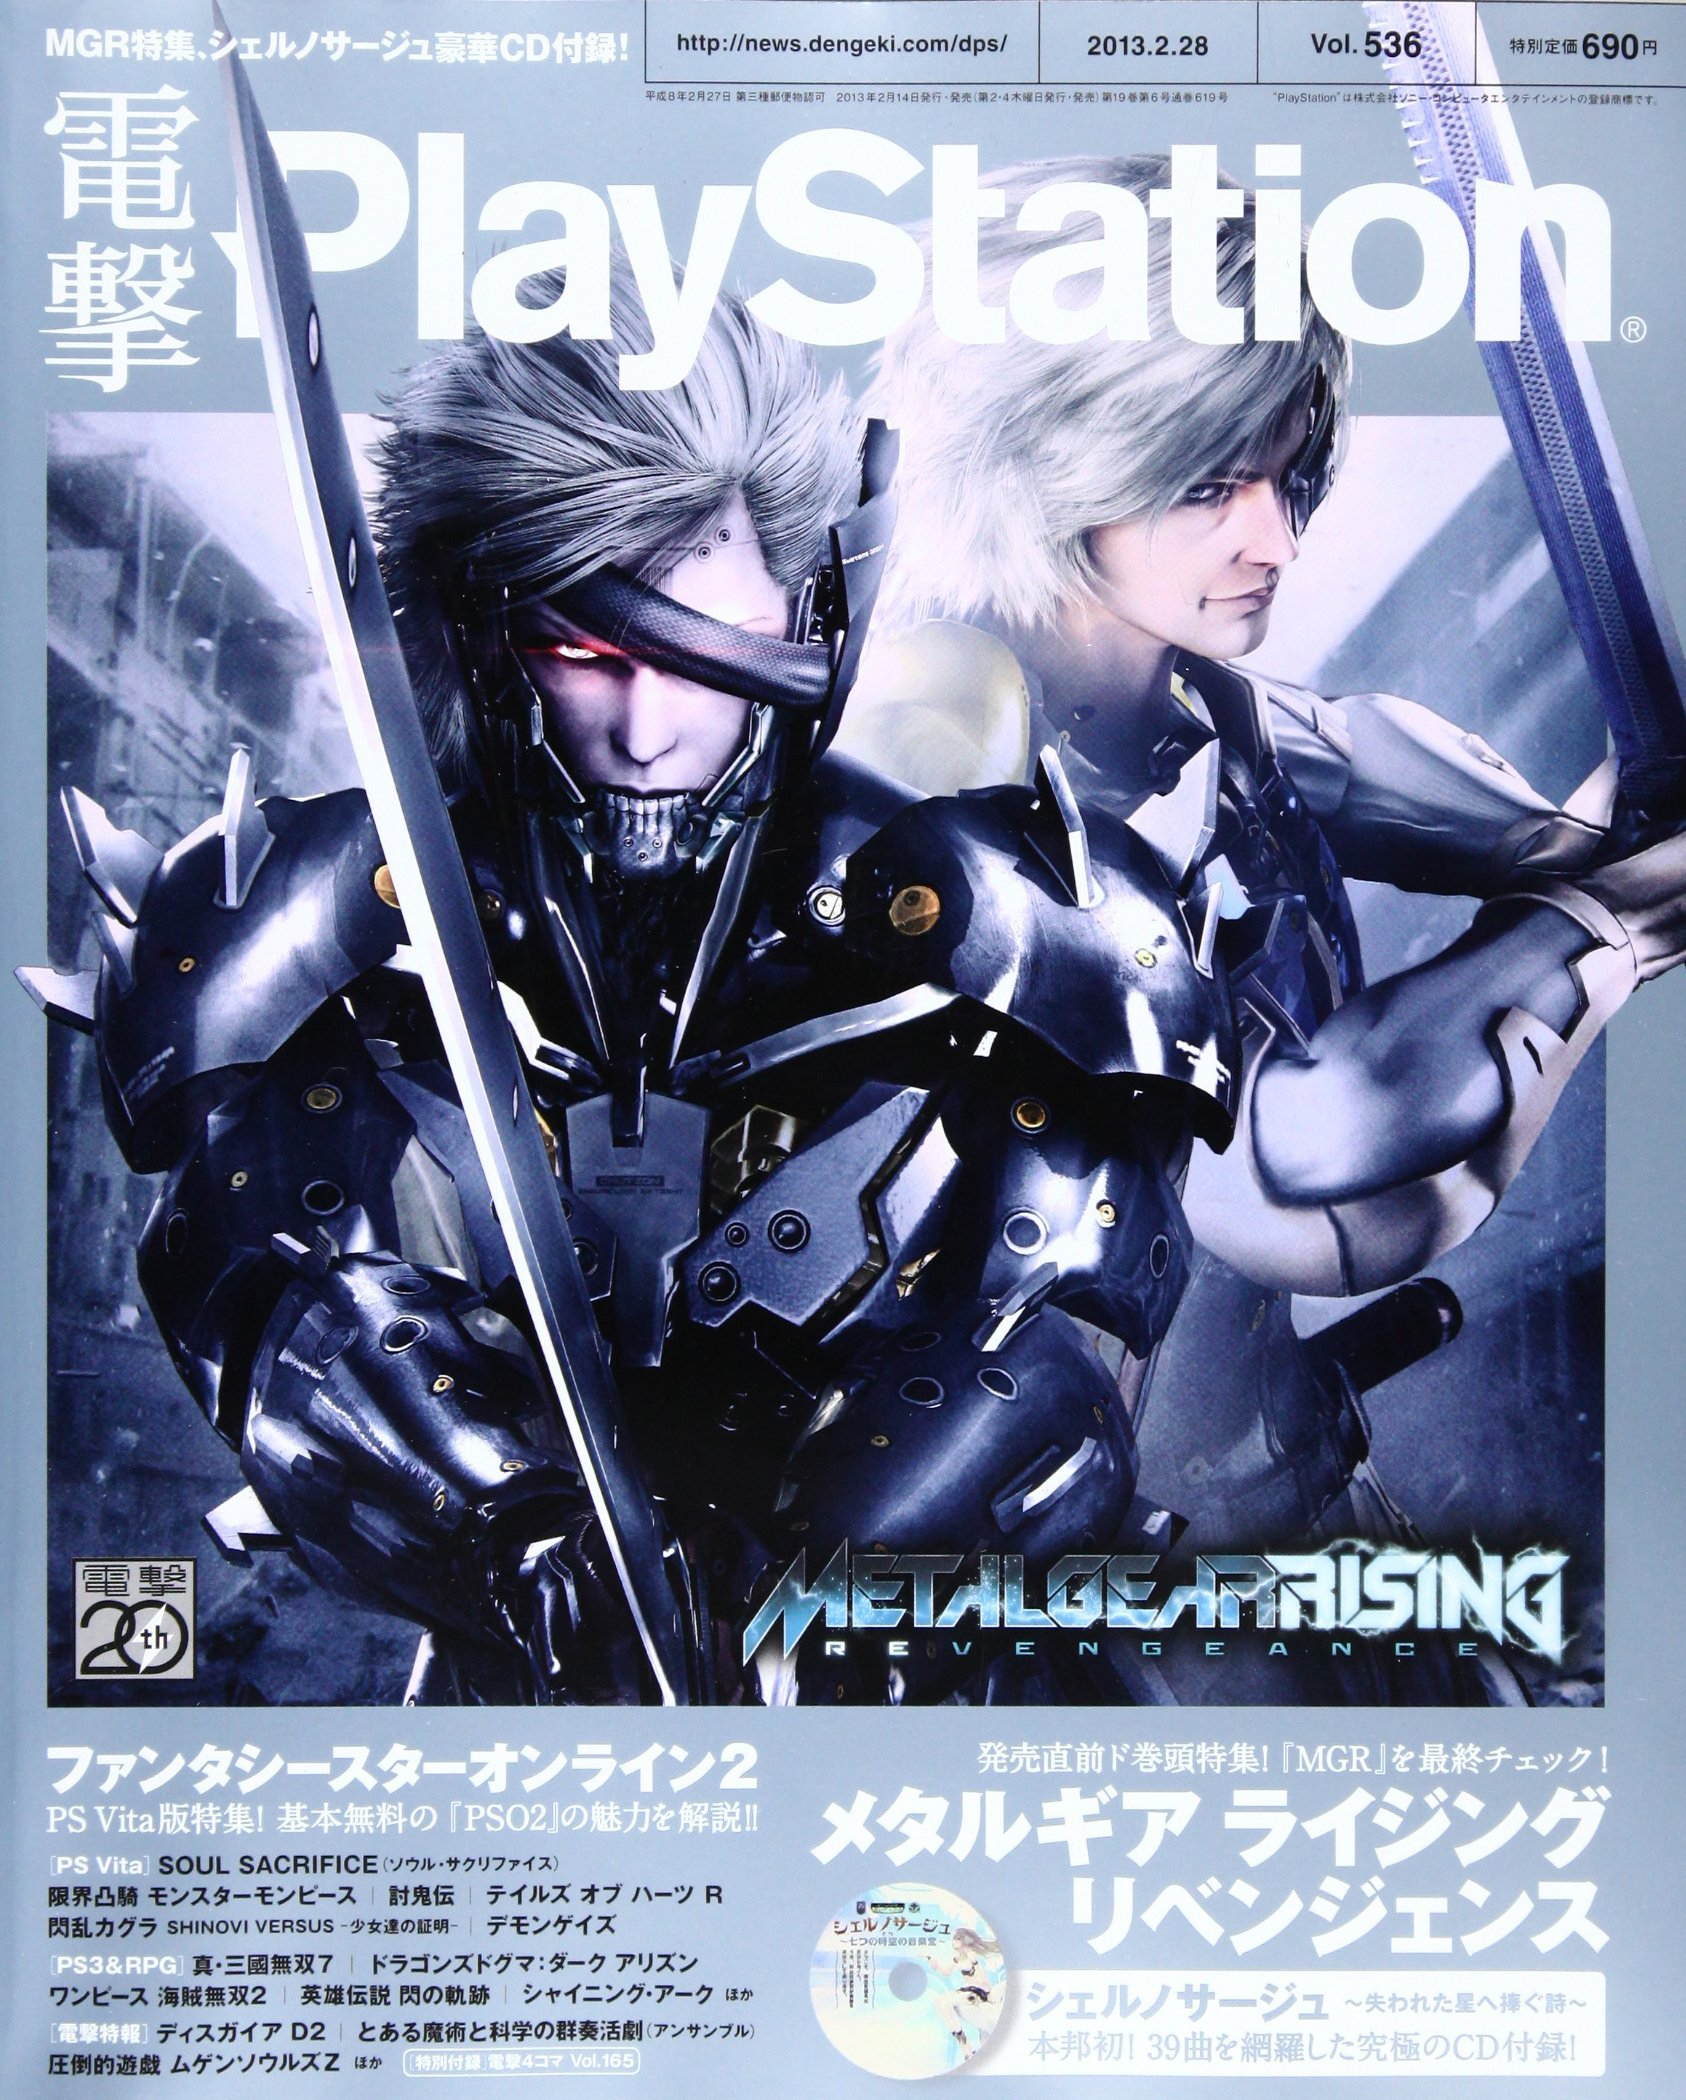 Dengeki PlayStation 536 (February 28, 2013)